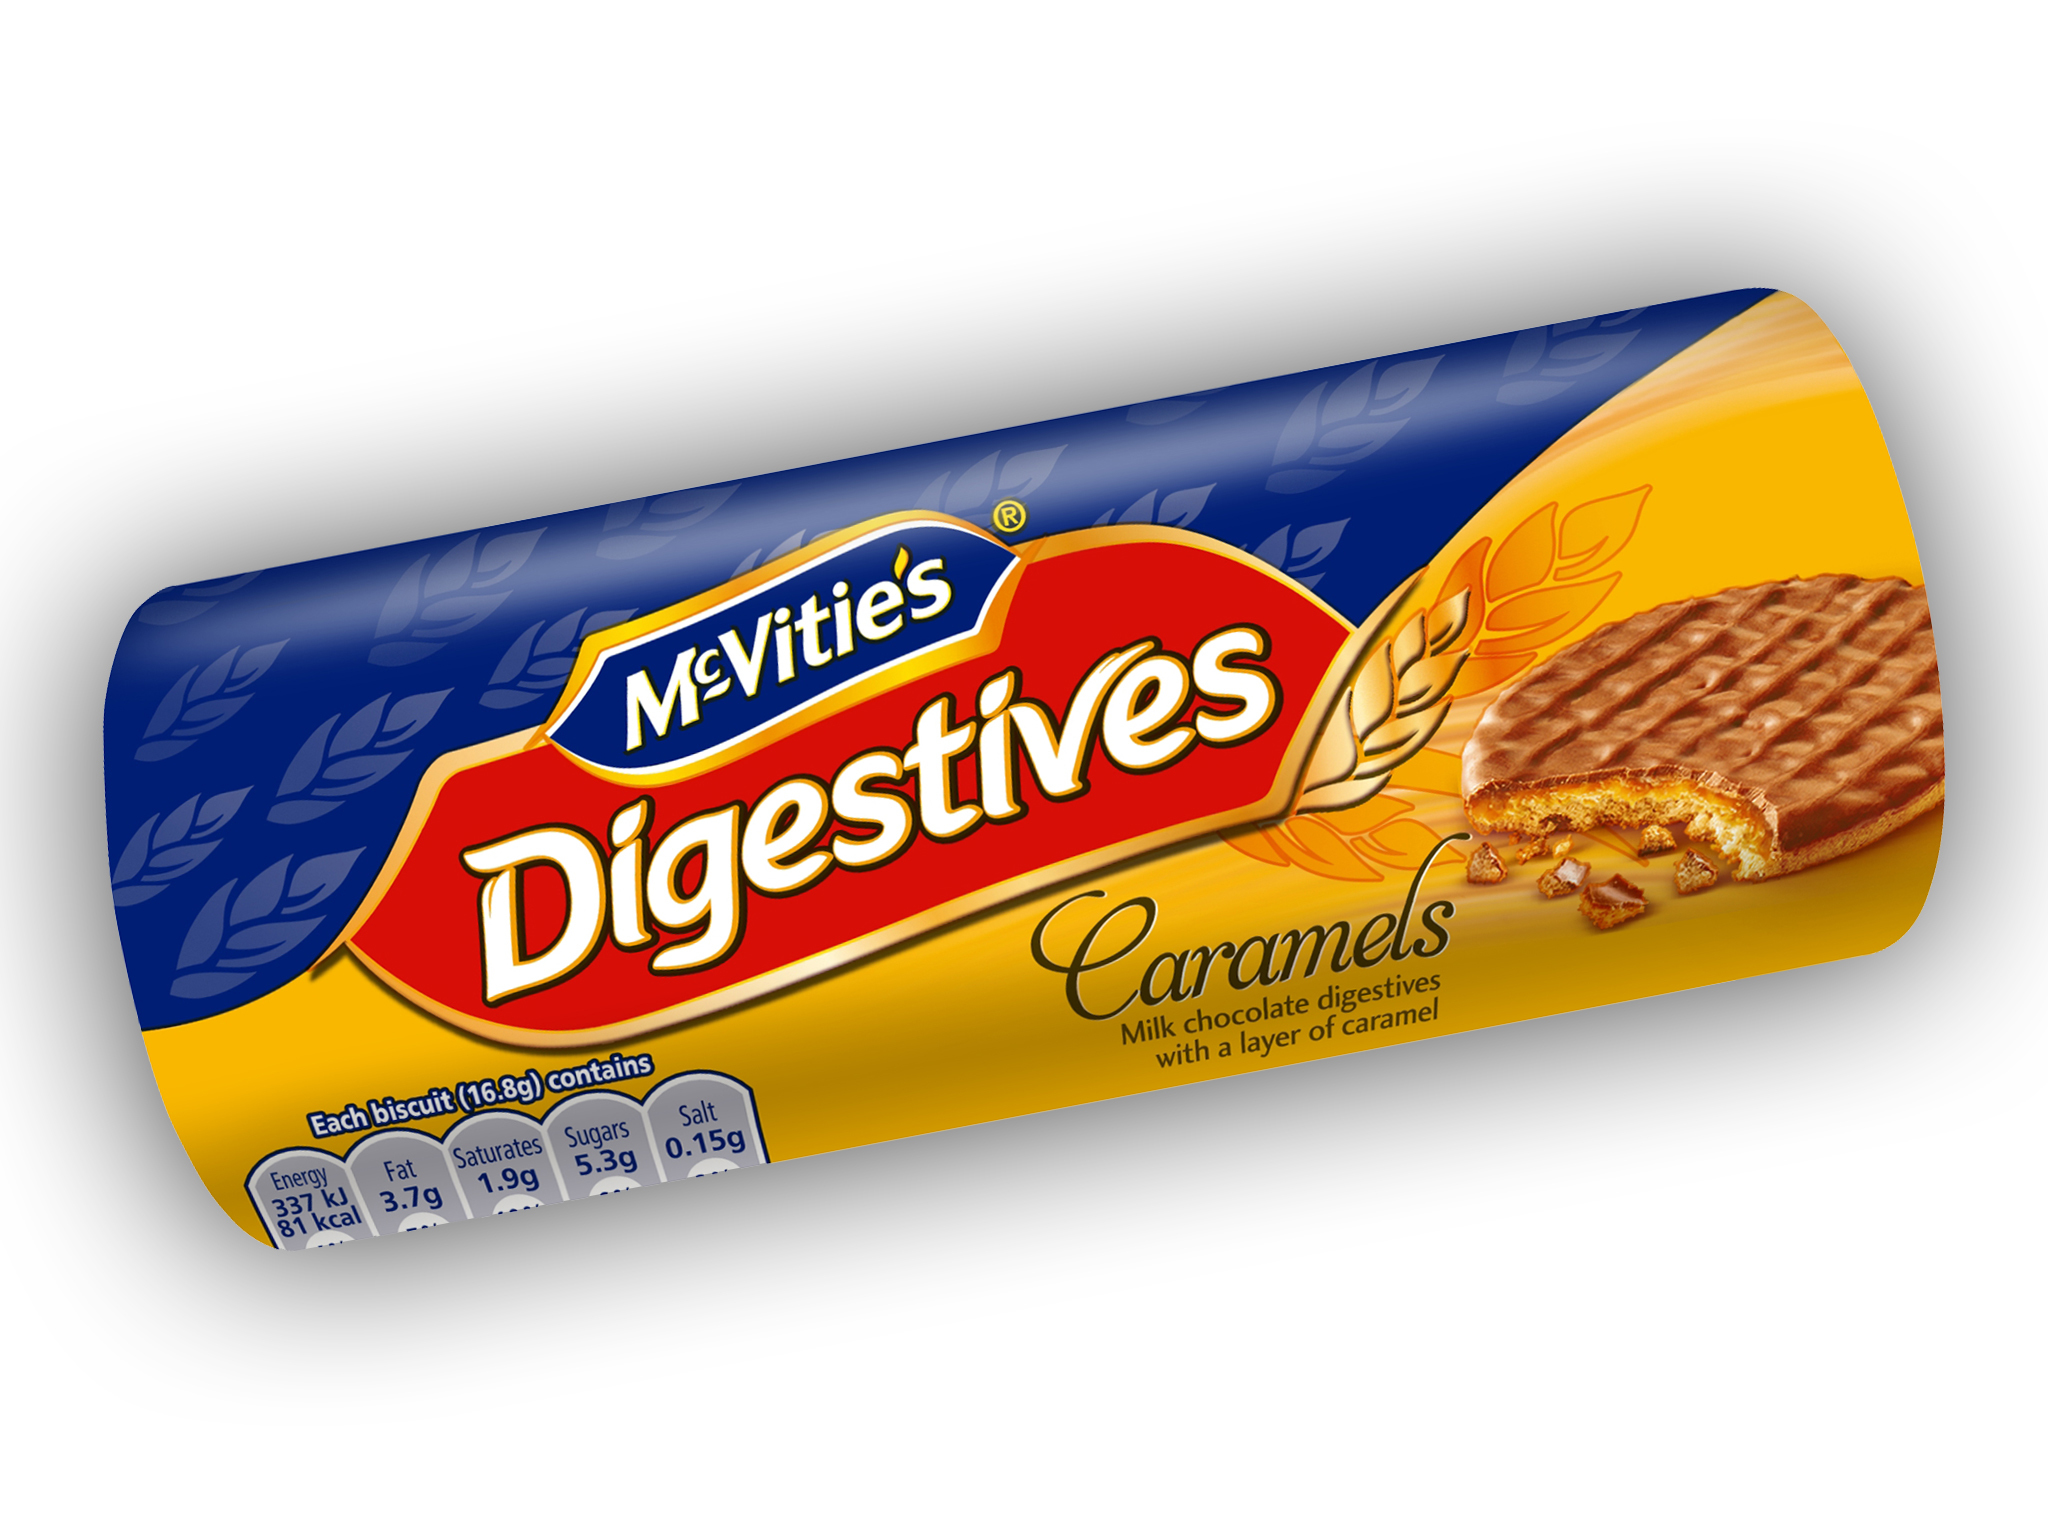 802d5b540db4 Your favourite biscuits ranked worst to best